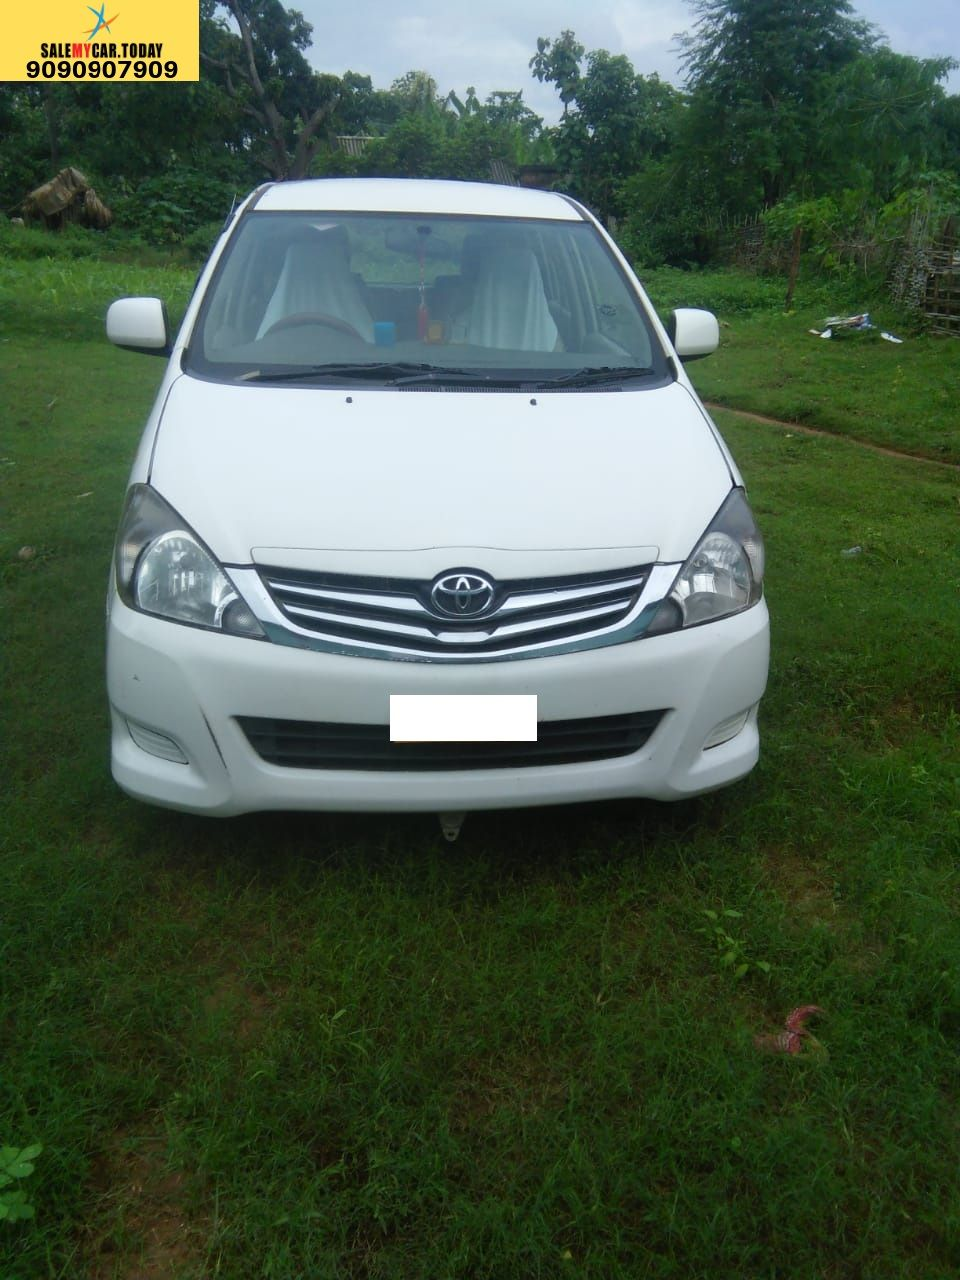 SECOND HAND TOYOTA INNOVA FOR SALE IN ODISHA in 2020